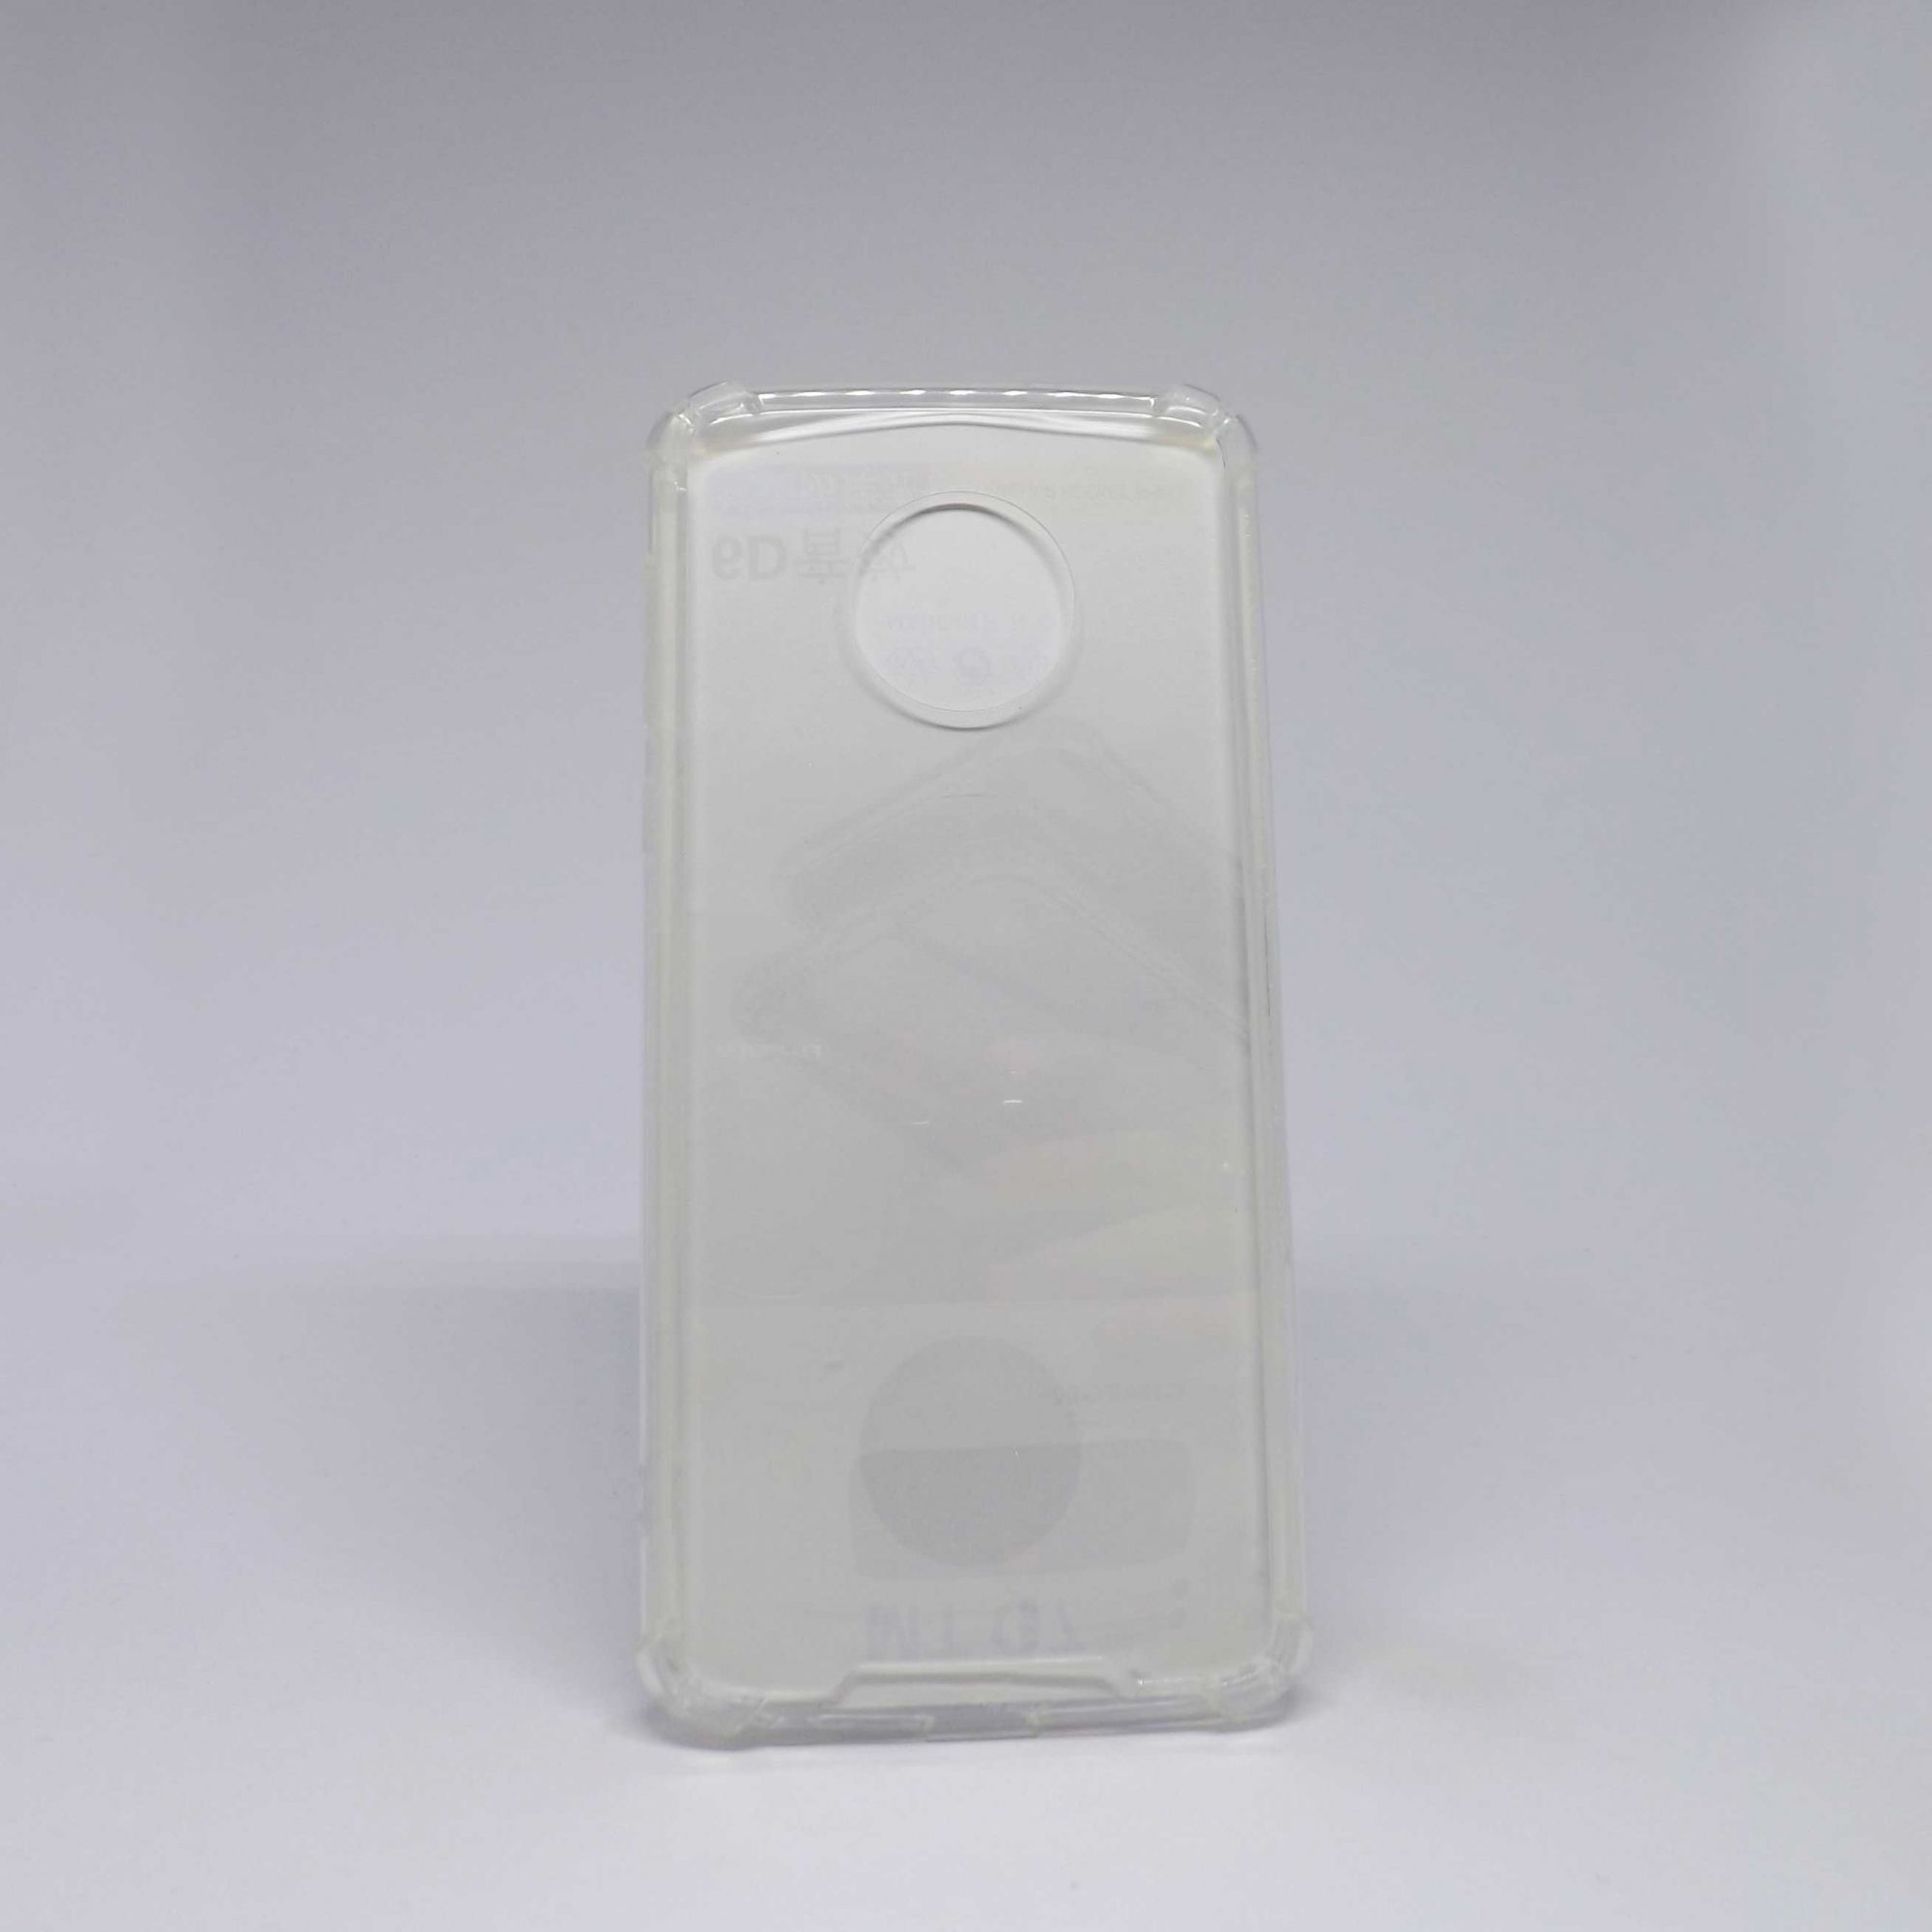 Capa Motorola G5s Plus Antiqueda Transparente